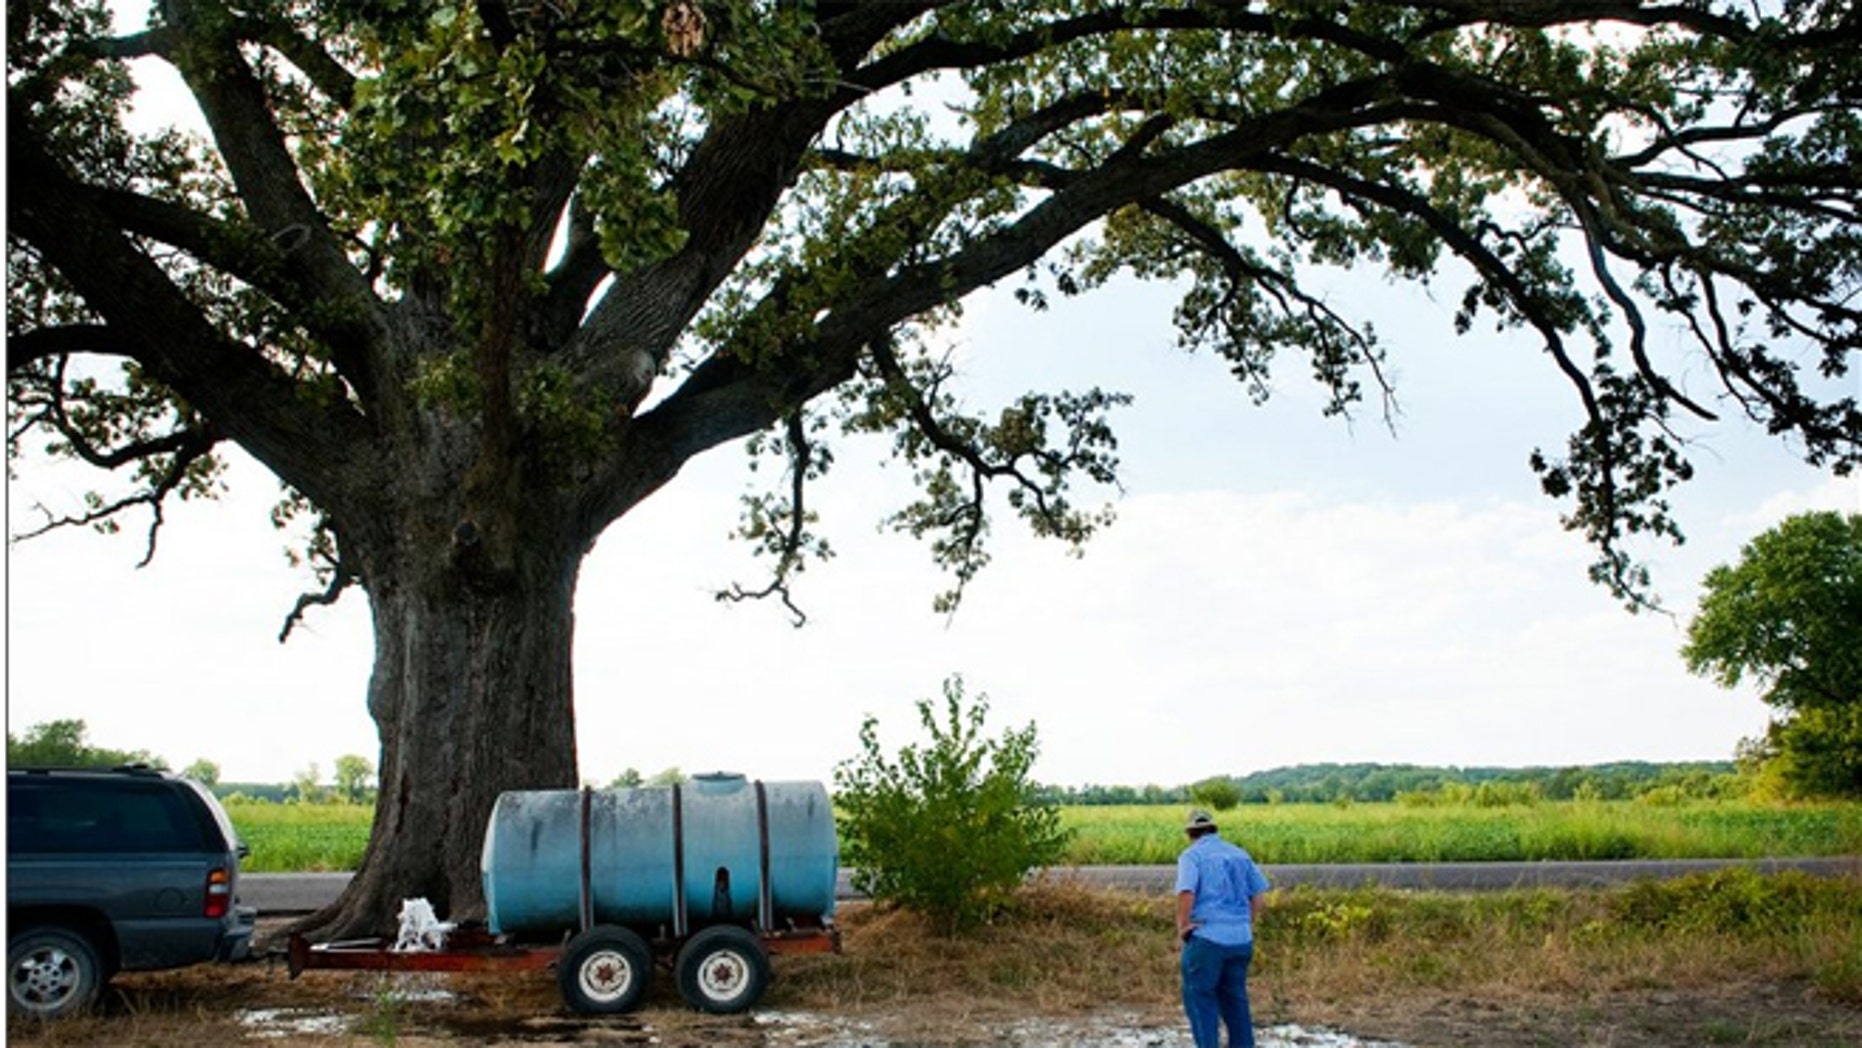 John Sam Williamson stands in front of the largest known bur oak tree anywhere. He told the Columbia Daily Tribune that he plans on watering the tree with 1,600 gallons each week for the next several weeks.